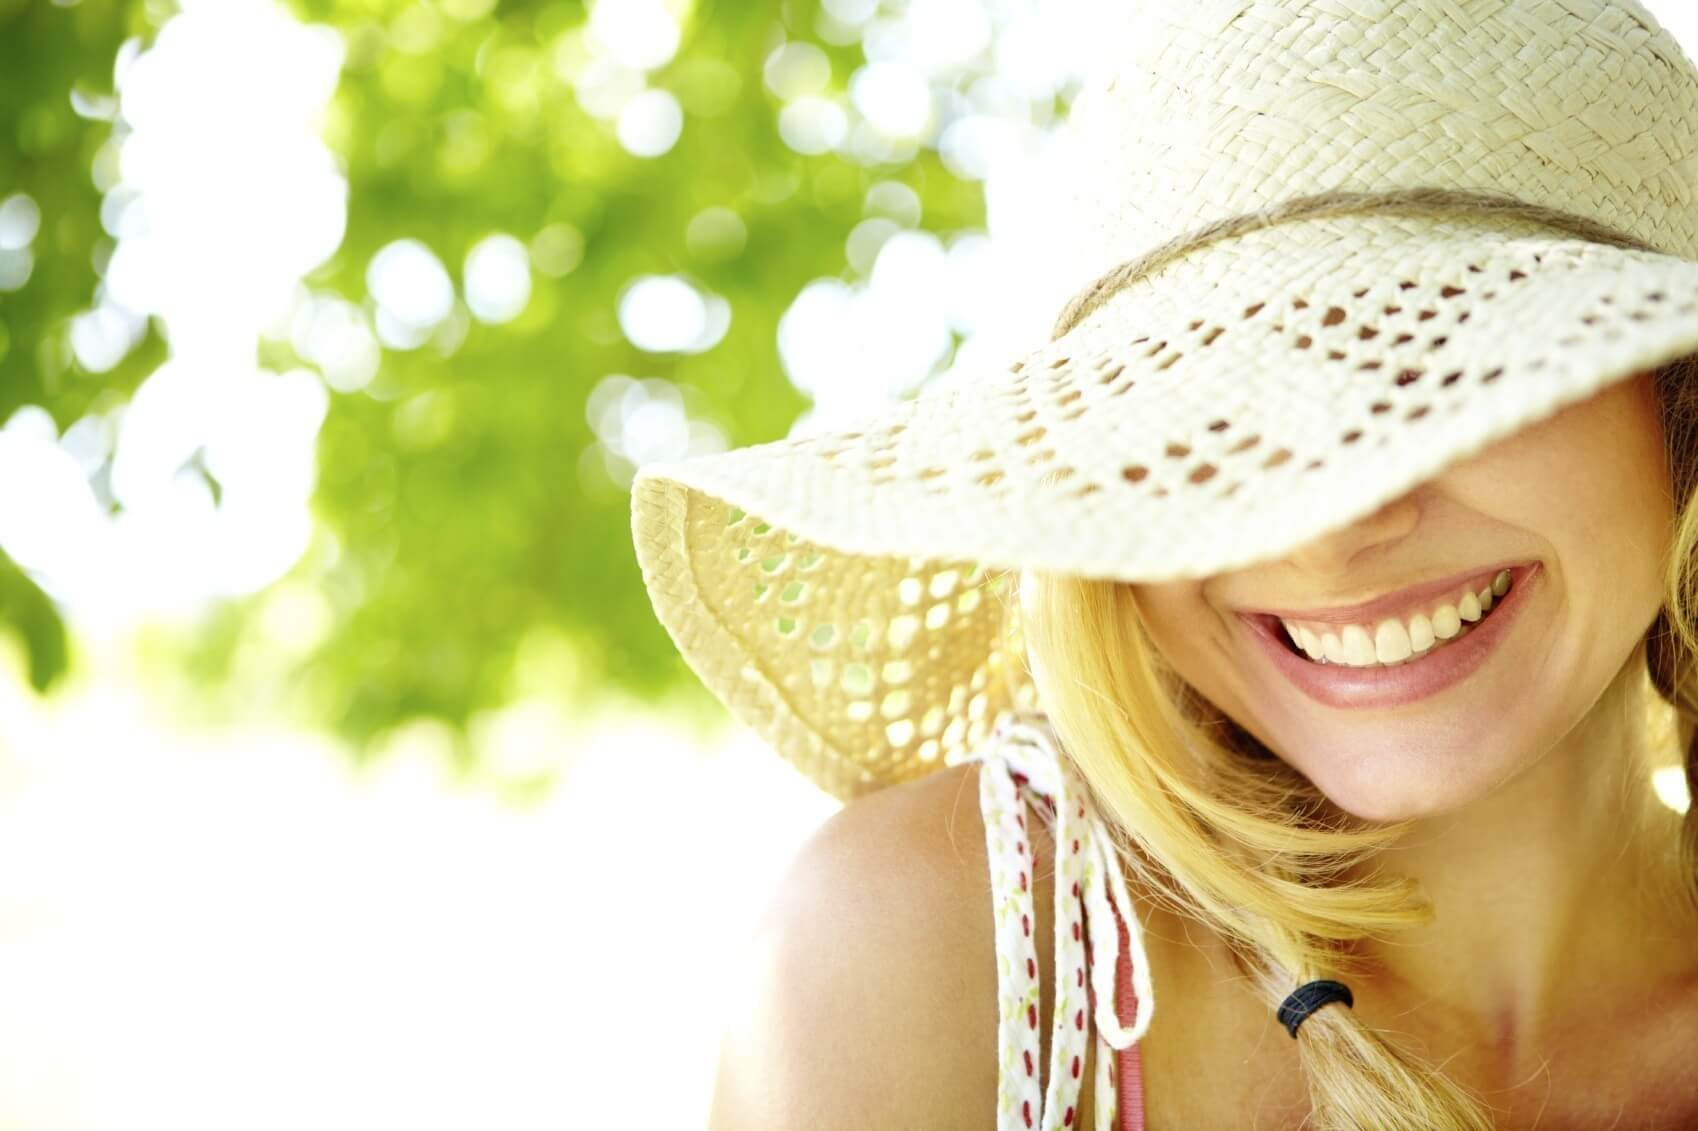 Smiling blonde with hat covering eyes with copyspace